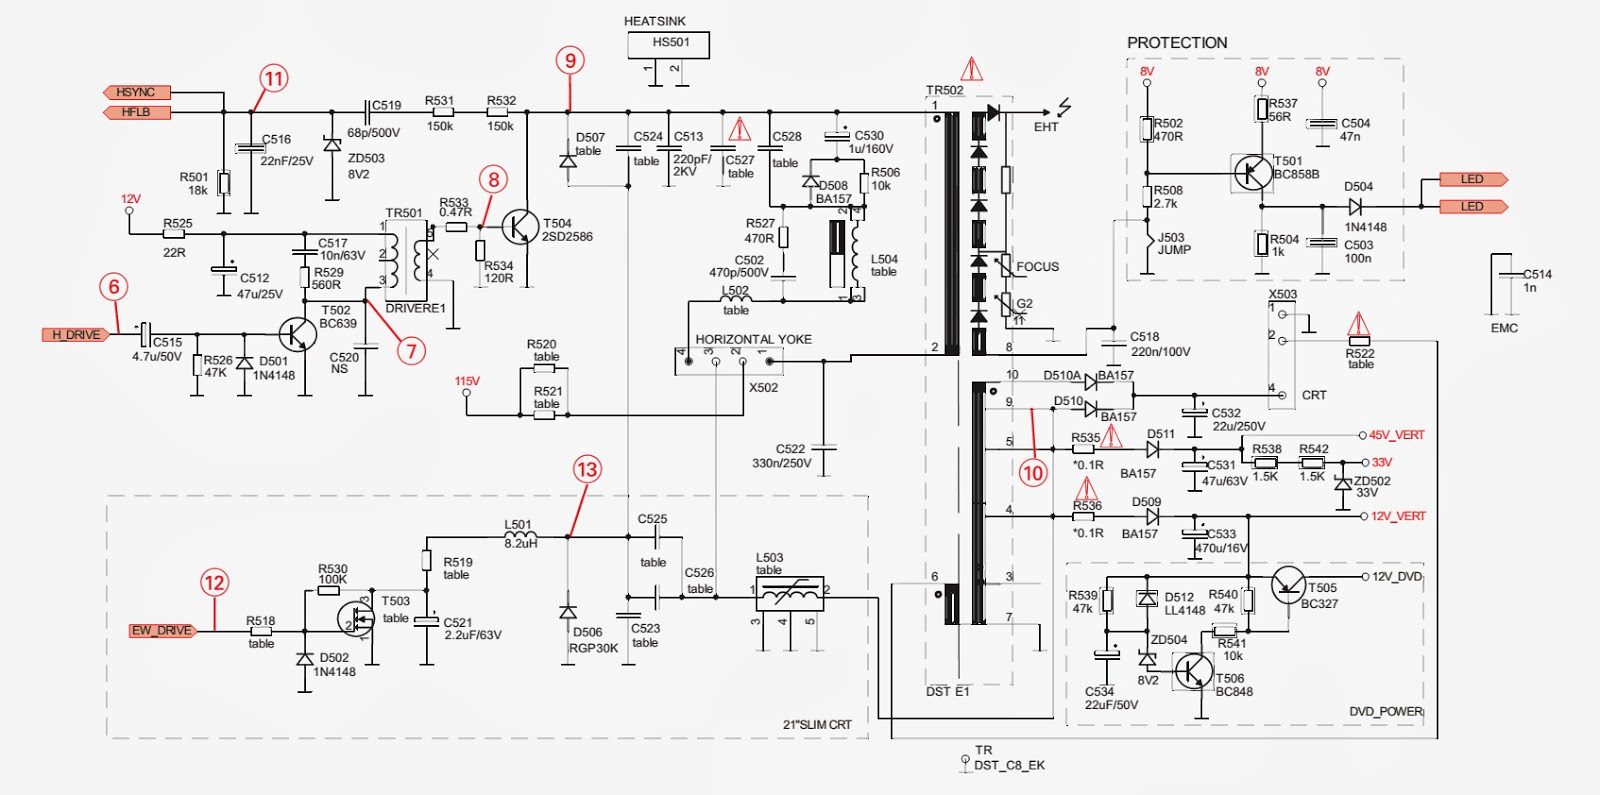 power supply wiring diagram computer atx power supply wiring diagram computer discover your power supply schematic diagram for tv